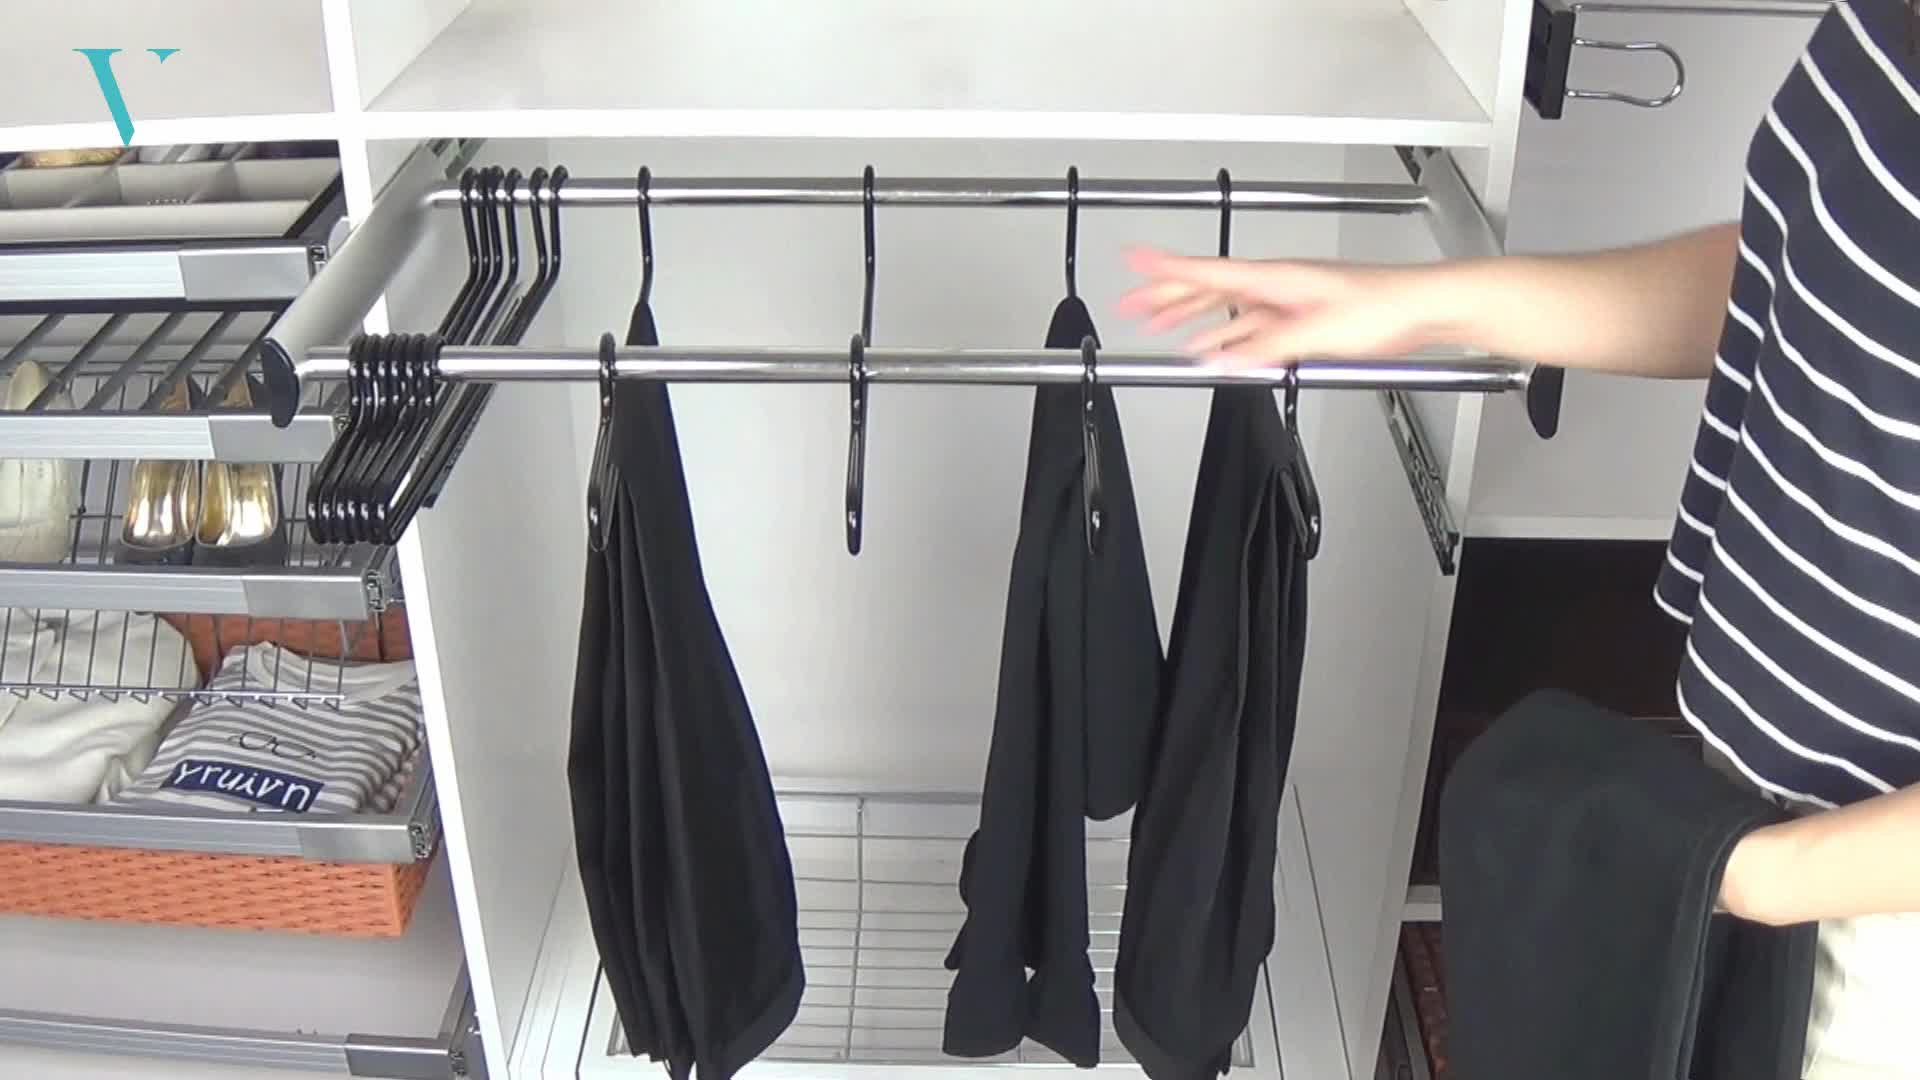 from chaotic for but a clothes do to arranged the when rackbuddy what or finally fashion arrived closet it tidier germany tips spring and new blog desire has is pants poorly modeblog wardrobe with rack